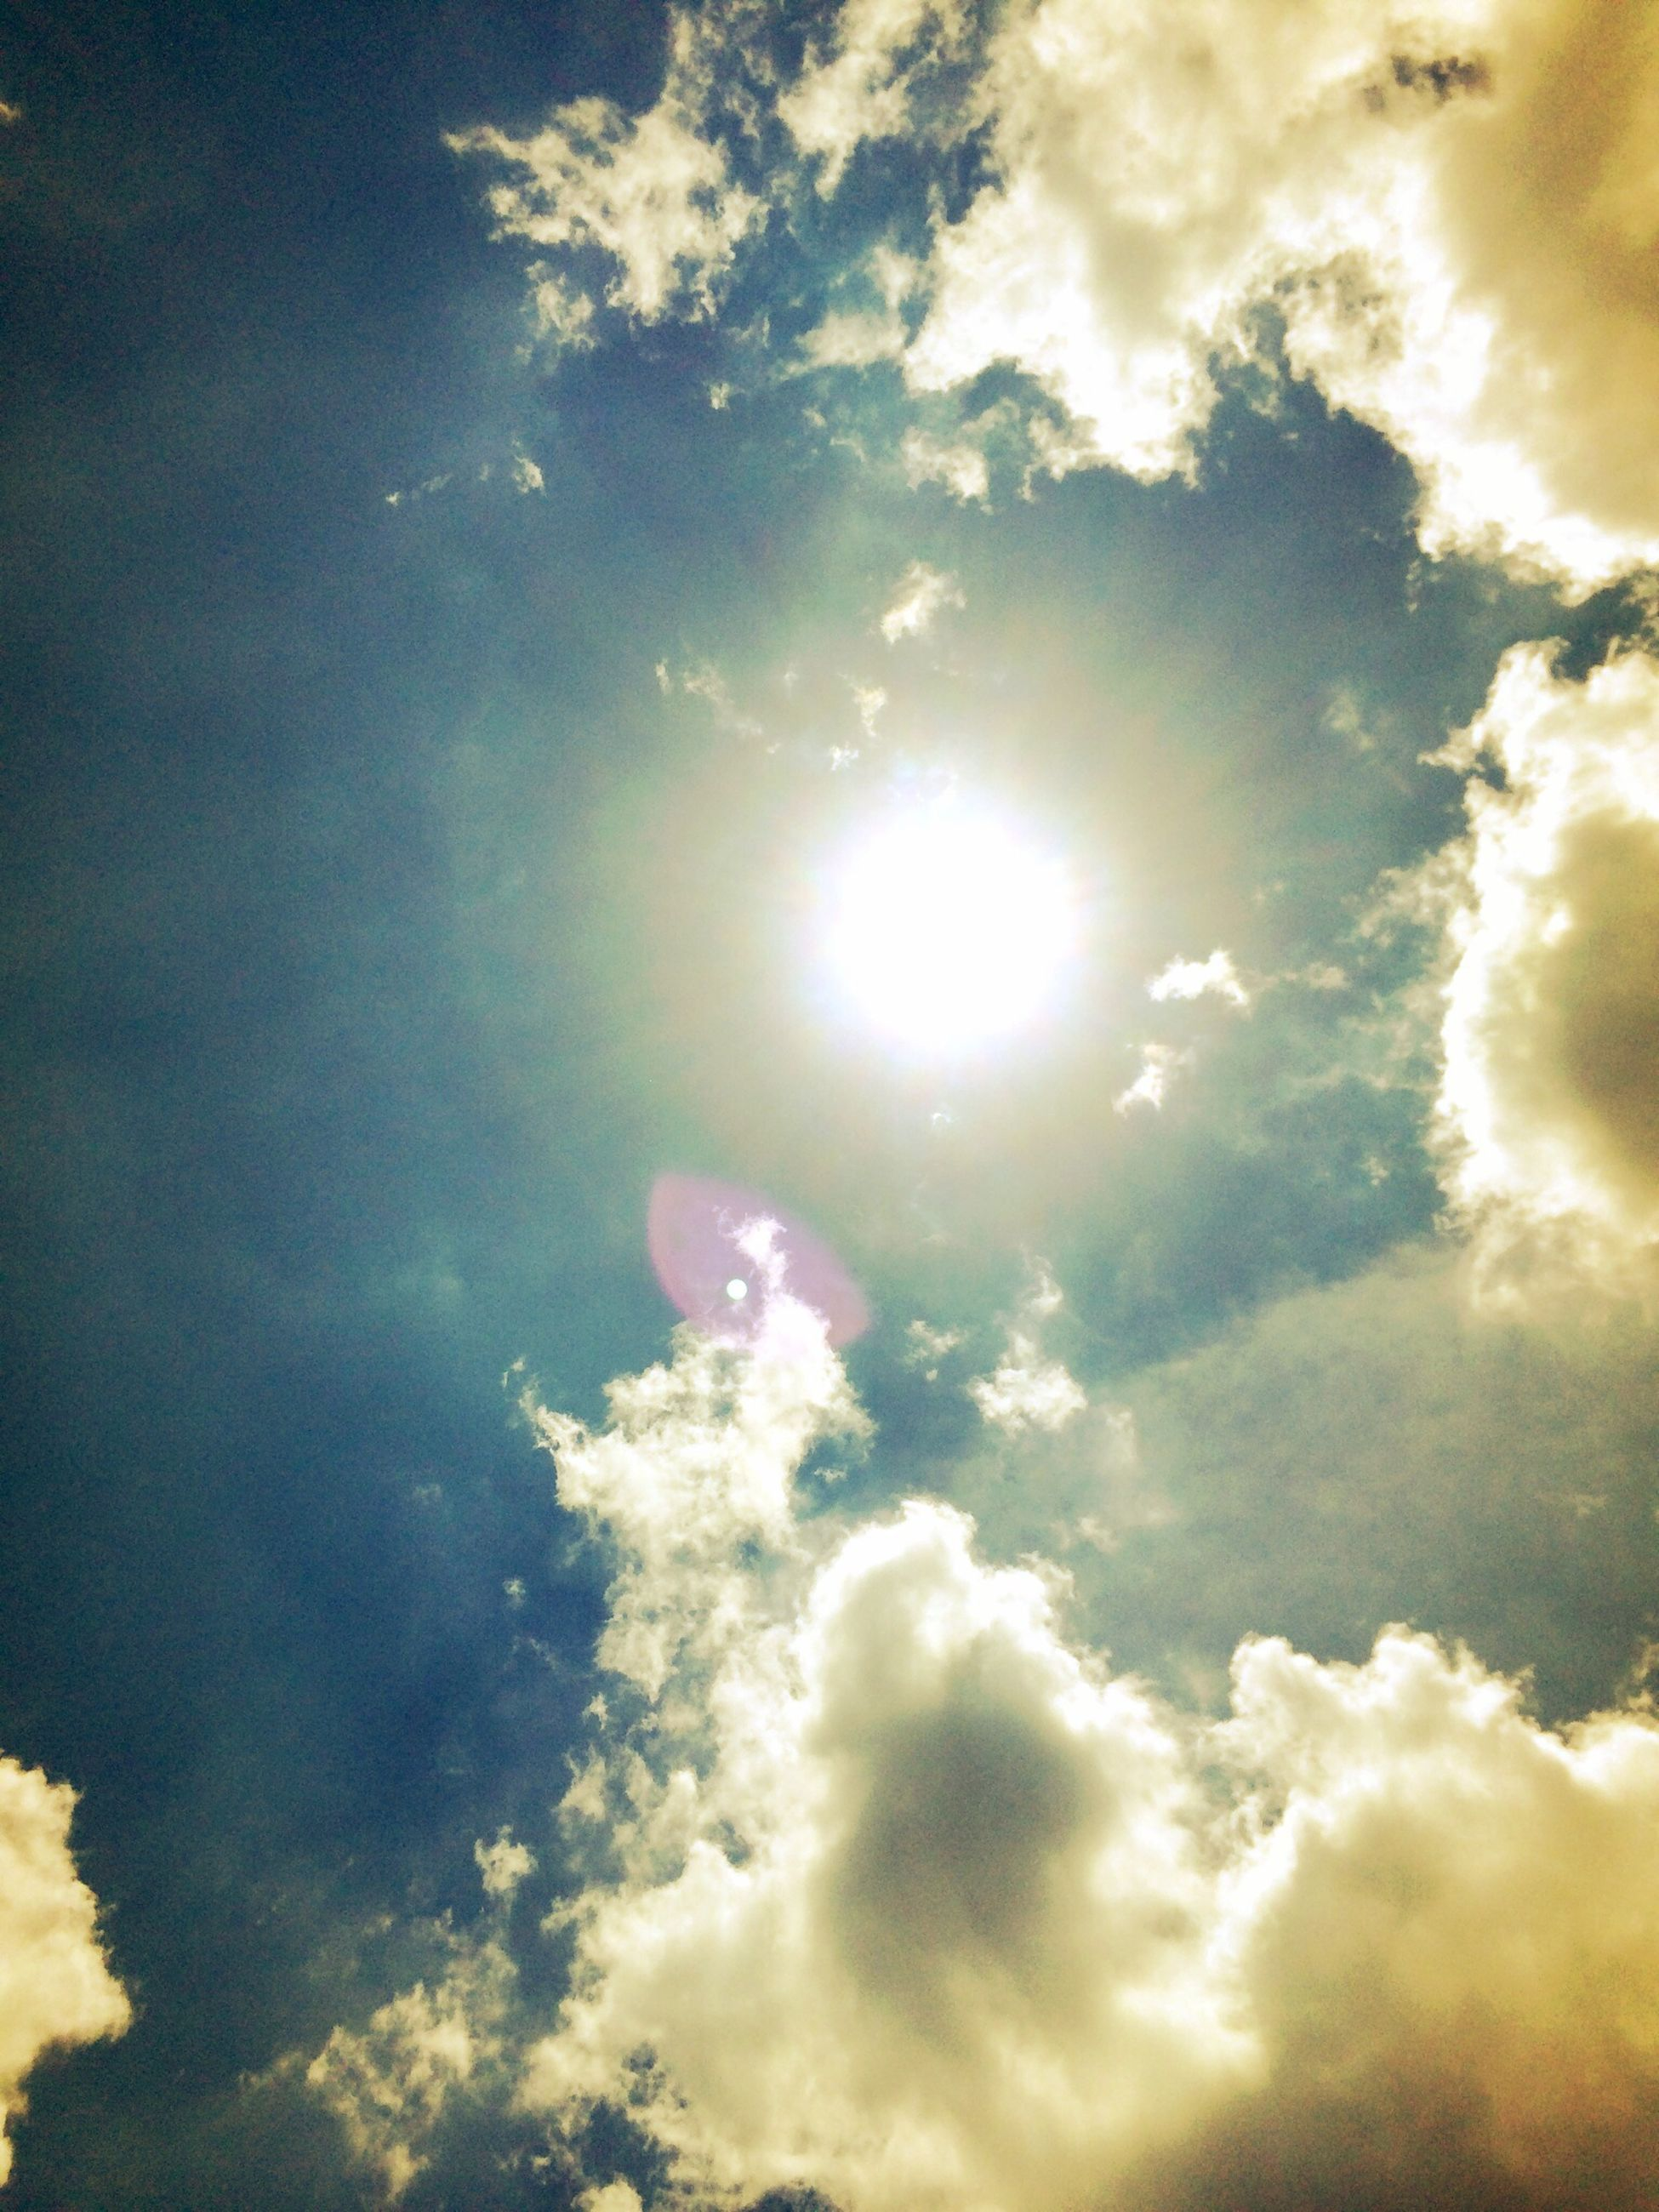 sun, sky, cloud - sky, sunbeam, low angle view, beauty in nature, sky only, sunlight, scenics, tranquility, lens flare, nature, tranquil scene, cloudy, bright, cloudscape, idyllic, cloud, backgrounds, outdoors